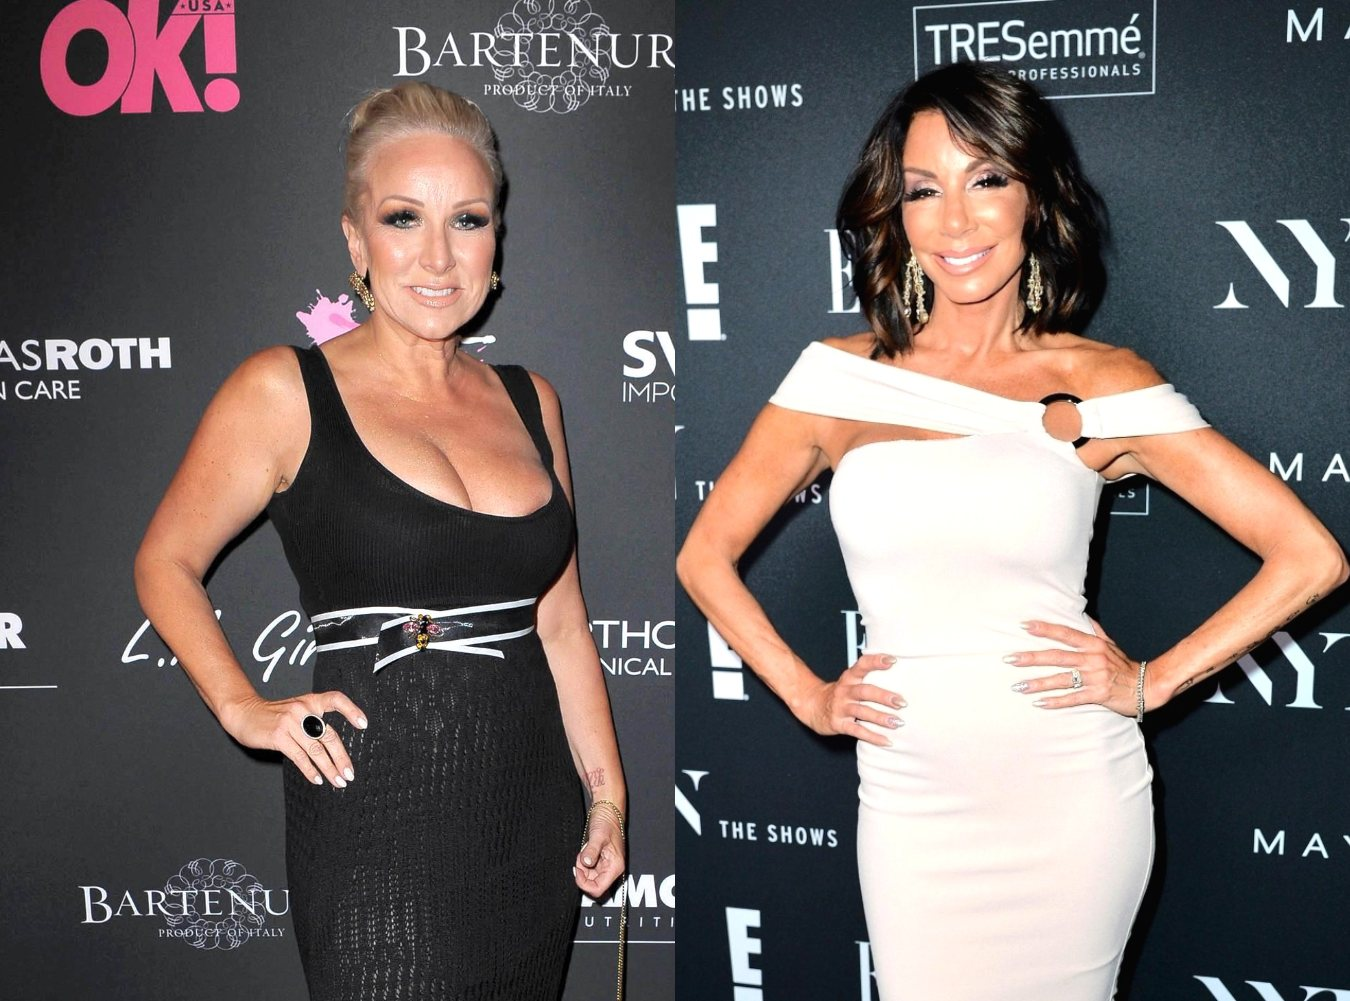 Margaret Josephs Suggests Danielle Staub Won't Return to the RHONJ Before Slamming Her as 'Pathological, Unstable and Frightening'